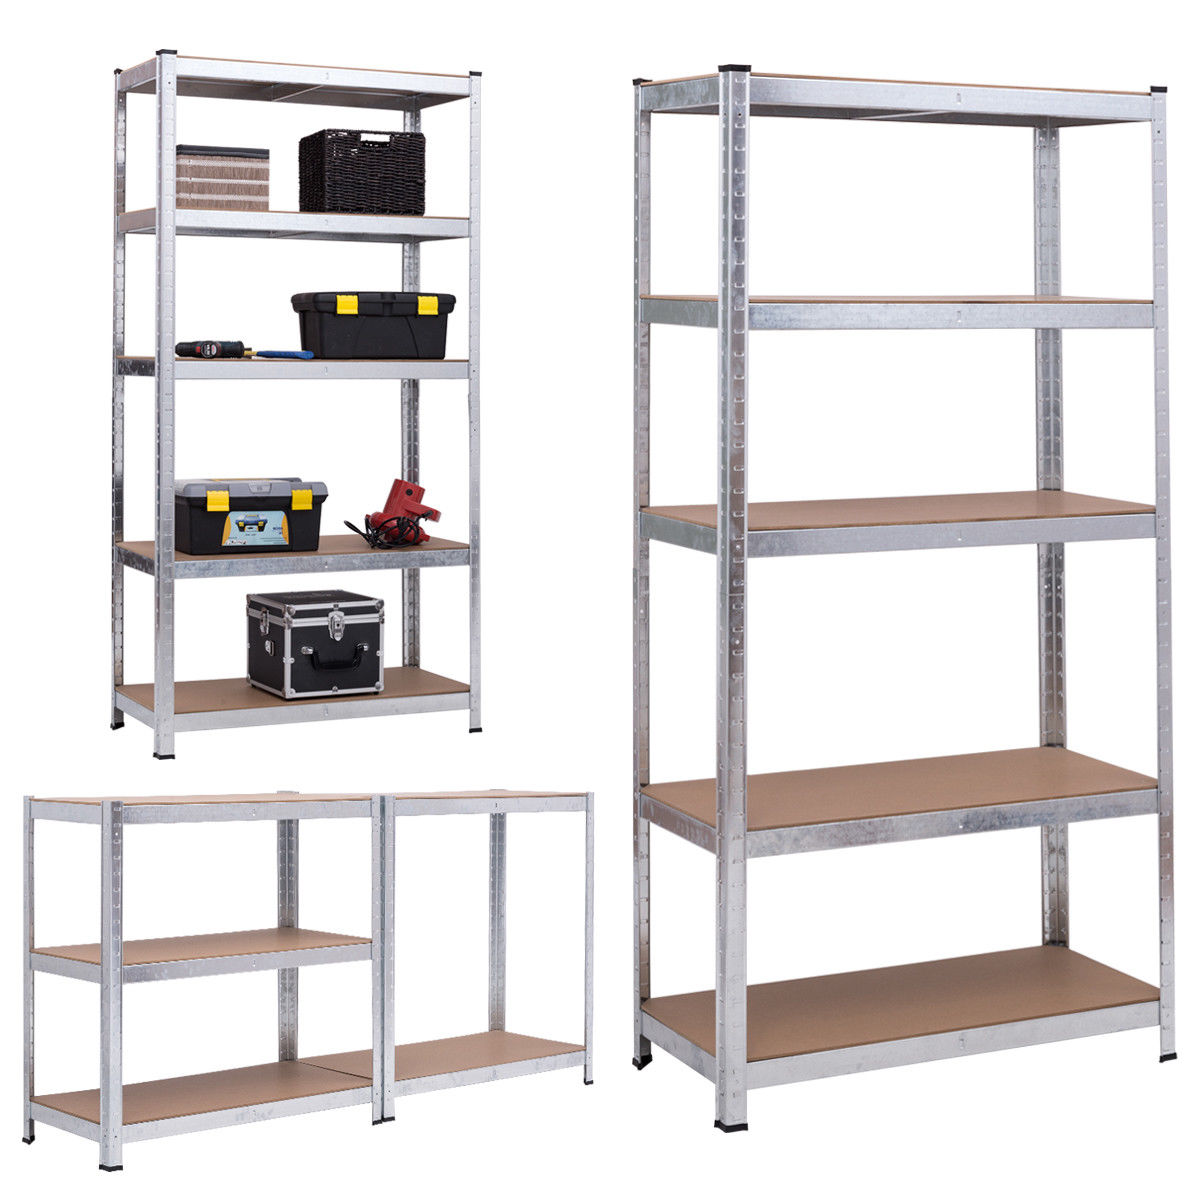 "71/"" Adjustable Heavy Duty Storage Shelf Steel Metal Garage Rack 5 Level  Shelves"